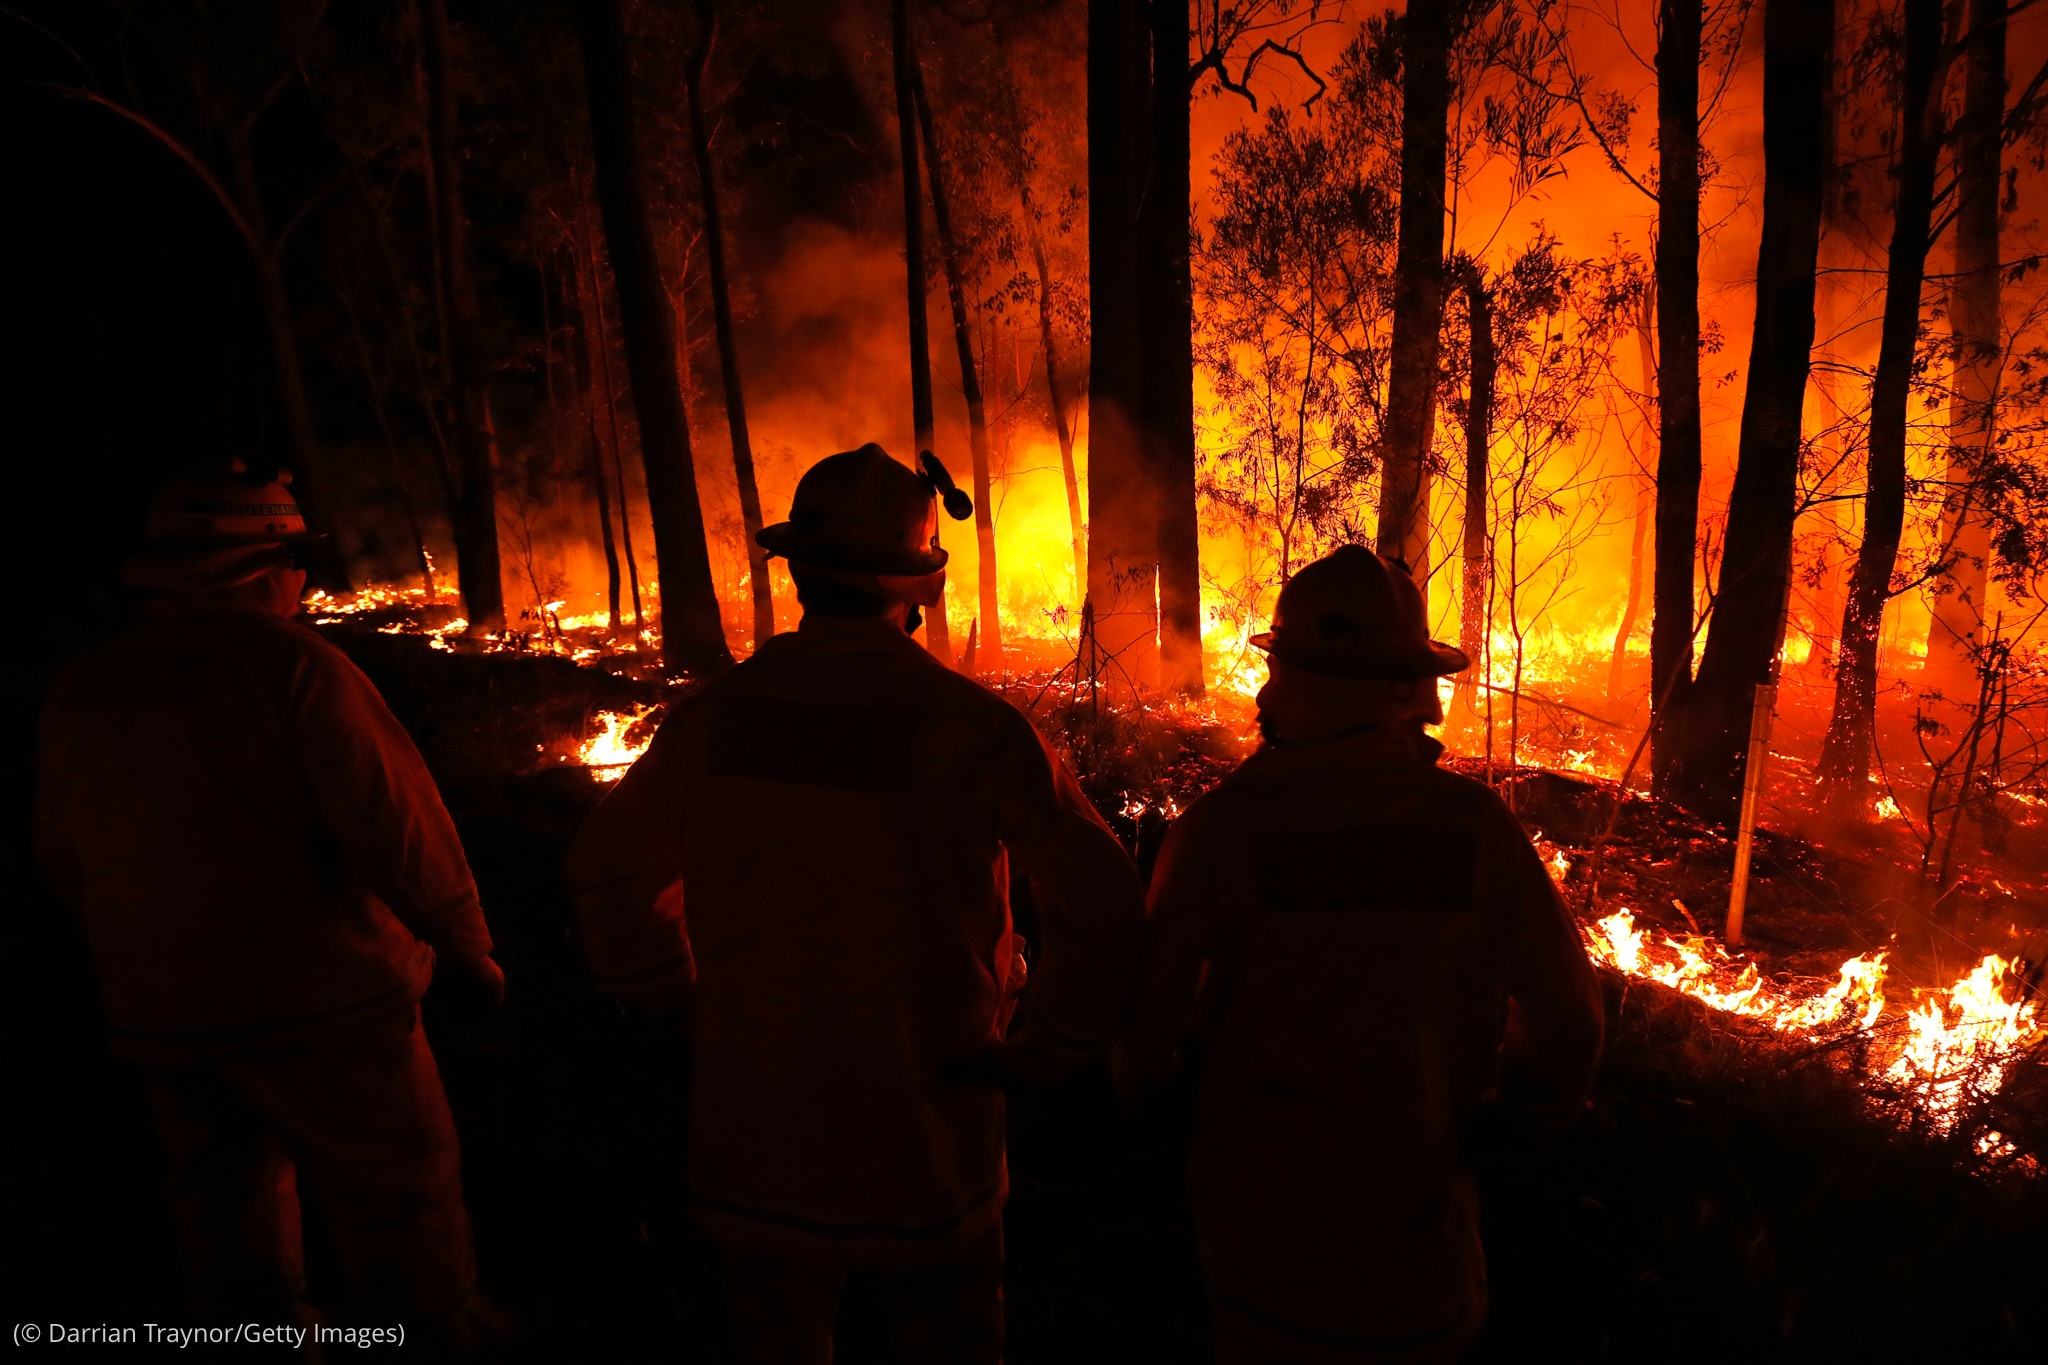 People looking at burning trees at night (© Darrian Traynor/Getty Images)